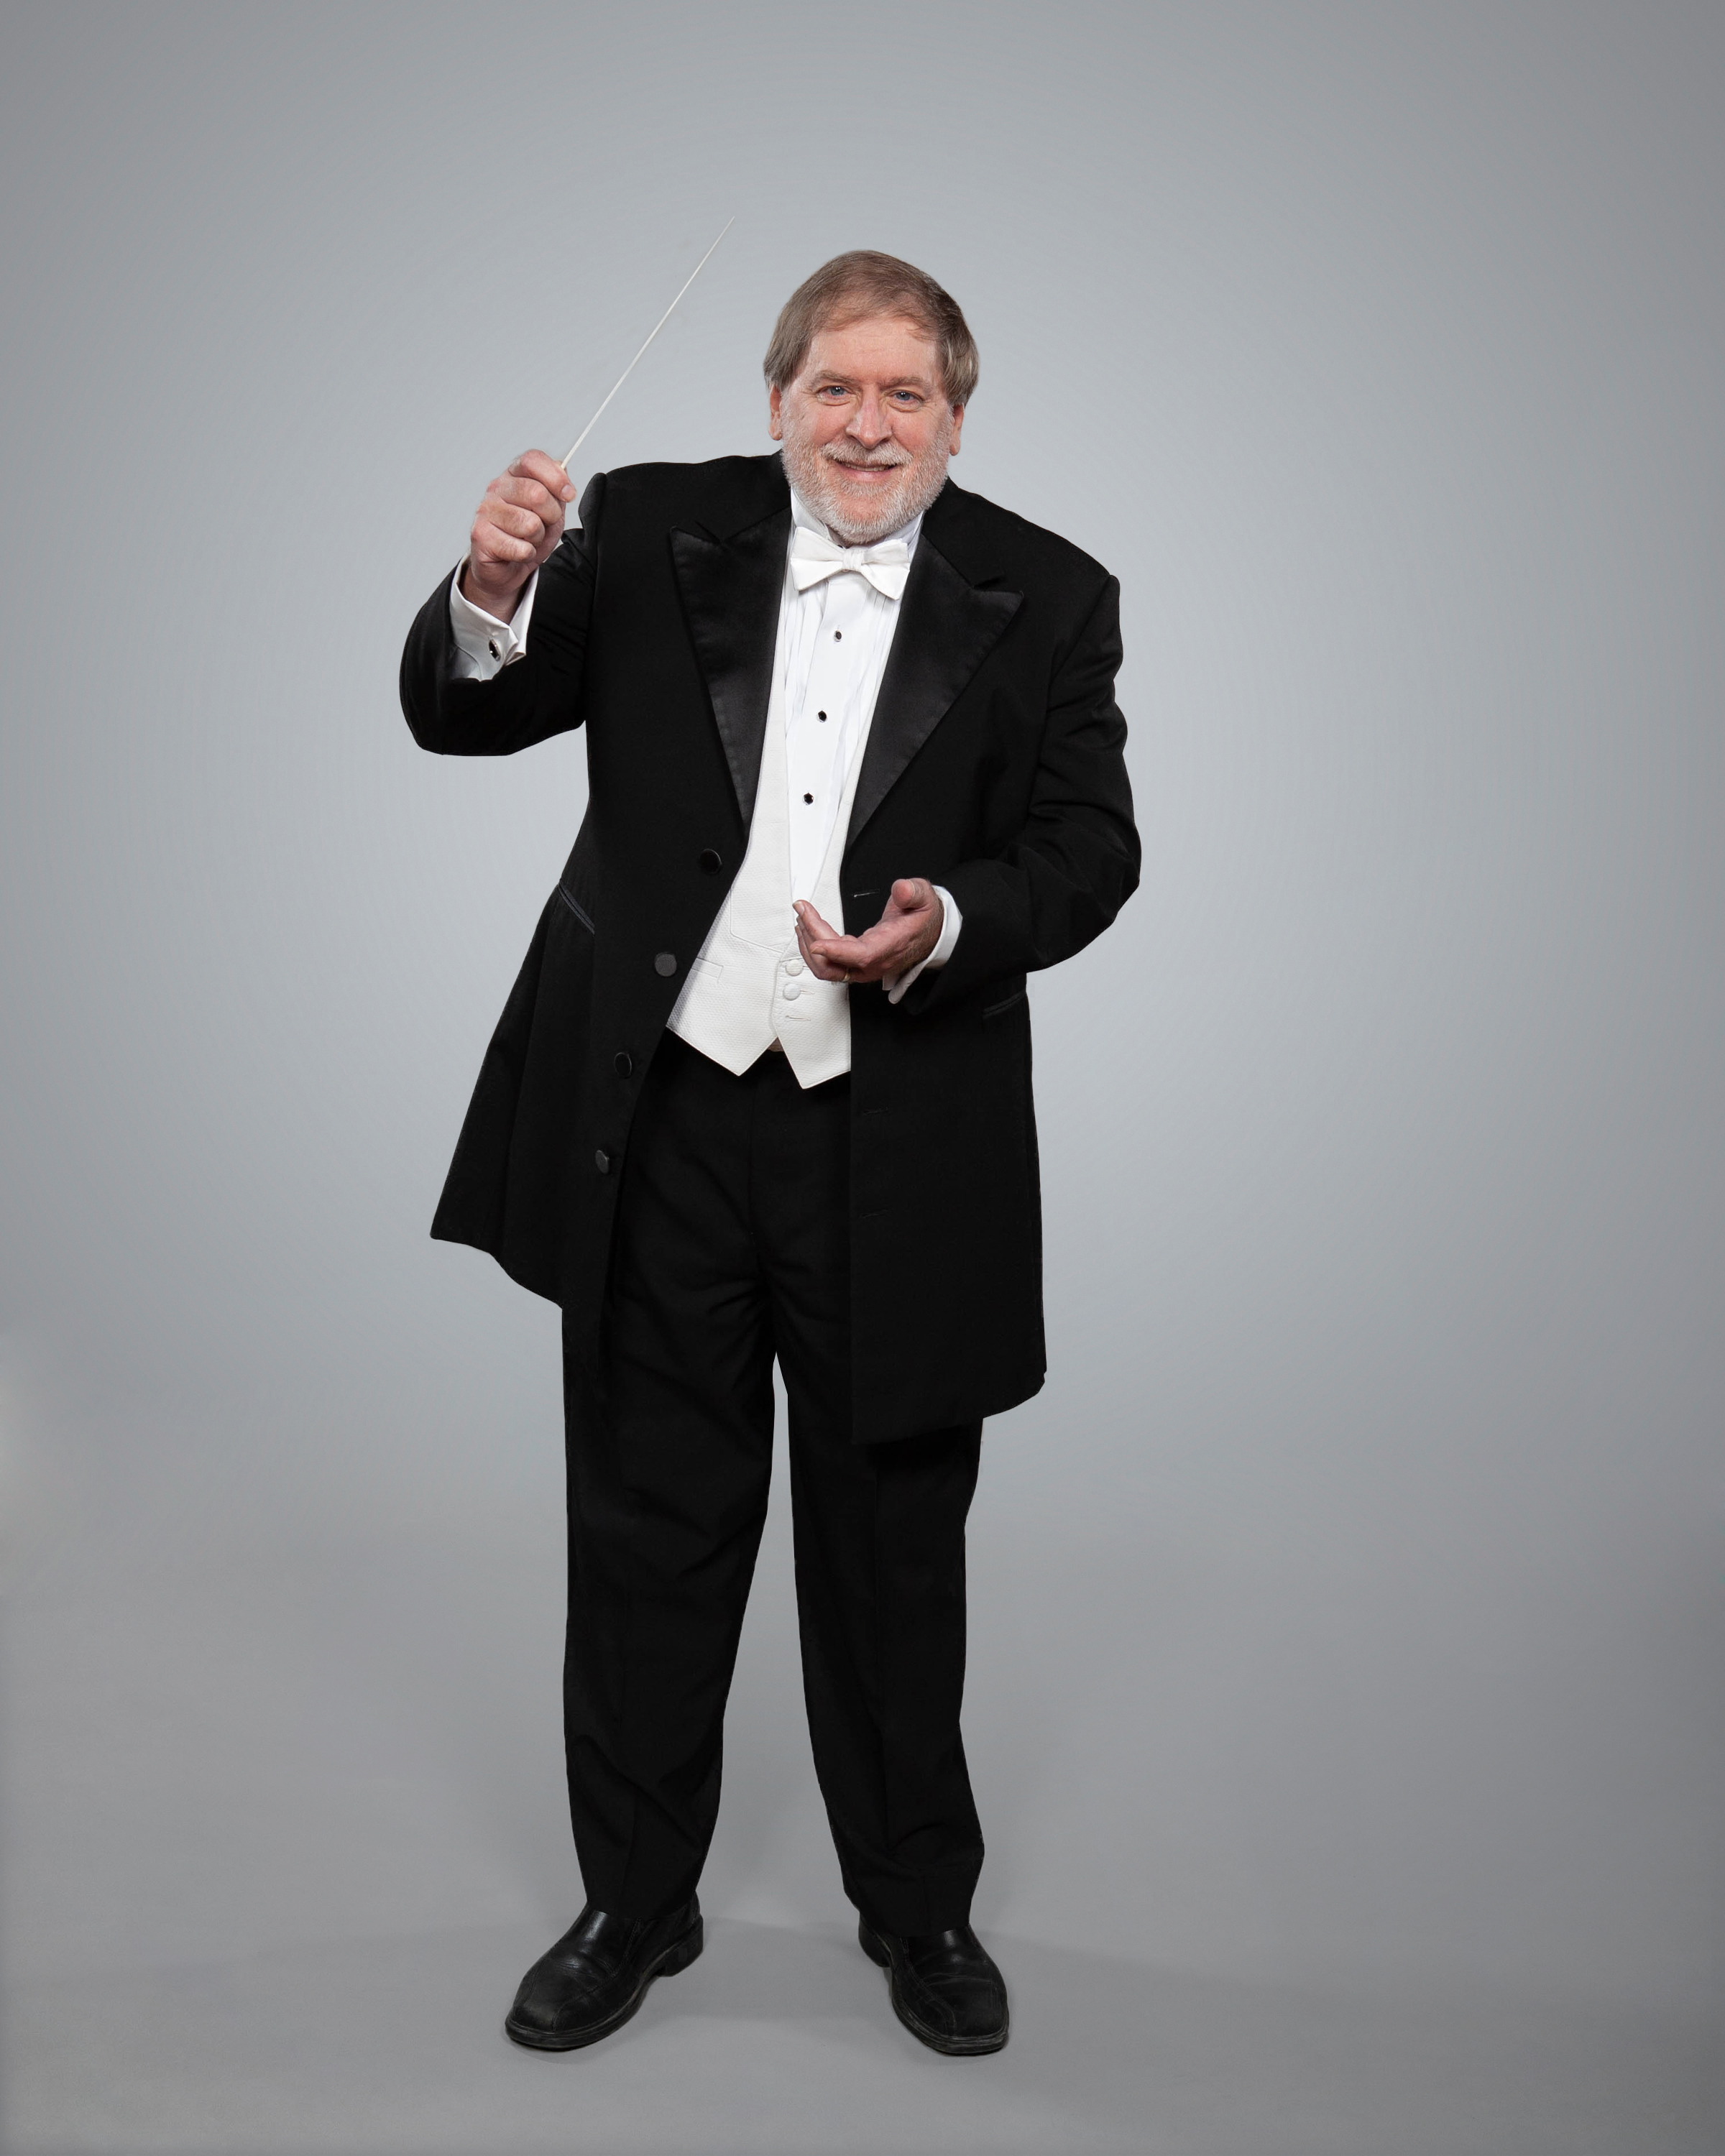 Stephen Heyde, The Mary Franks Thompson Professor of Orchestral Studies and Director of Orchestral Activities at Baylor University, and Music Director/Conductor of the Waco Symphony. Photo provided by Stephen Heyde.